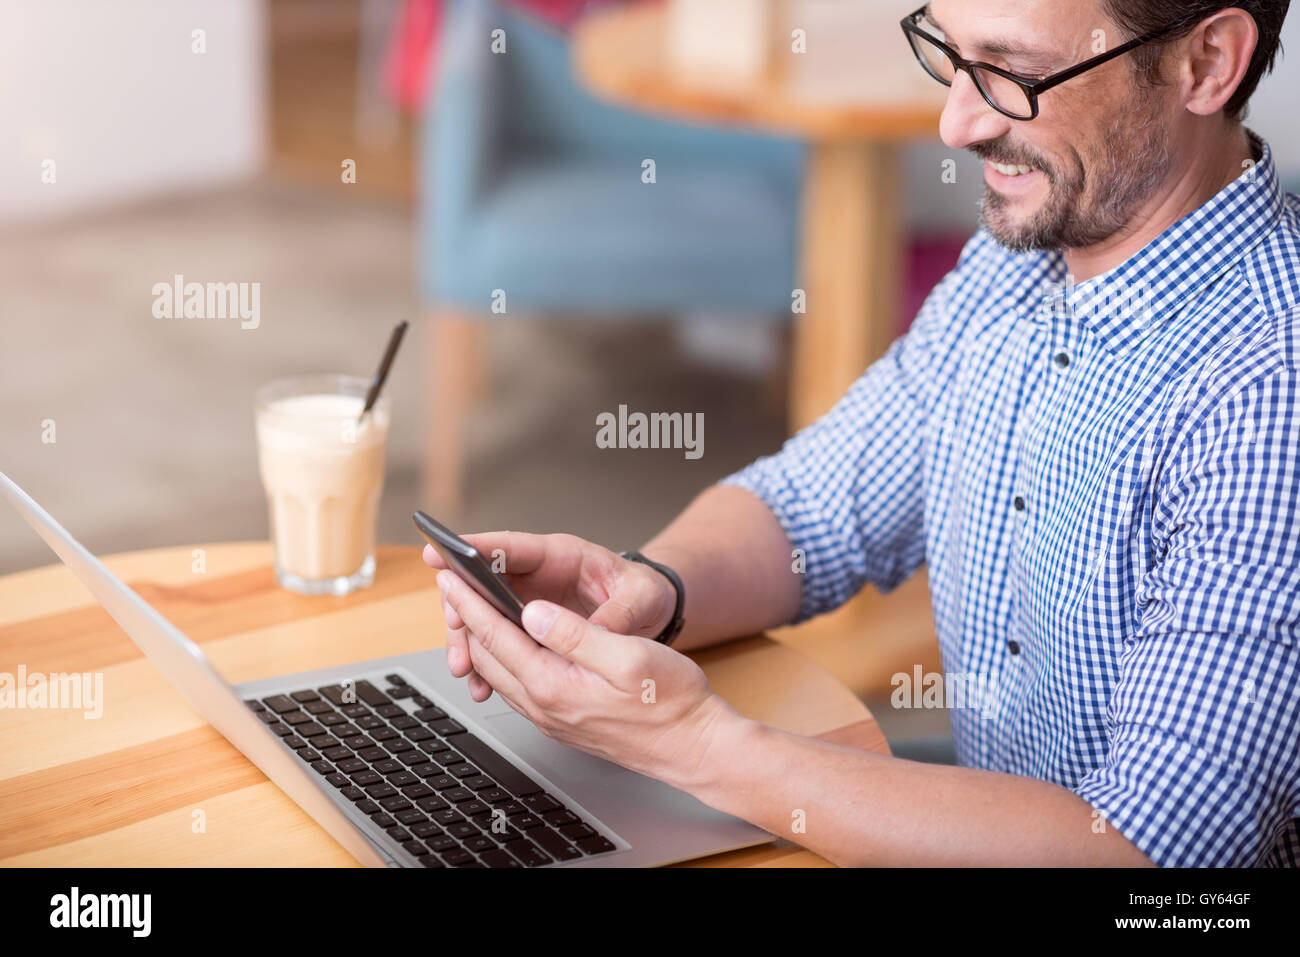 Handsome man using wearable technologies - Stock Image